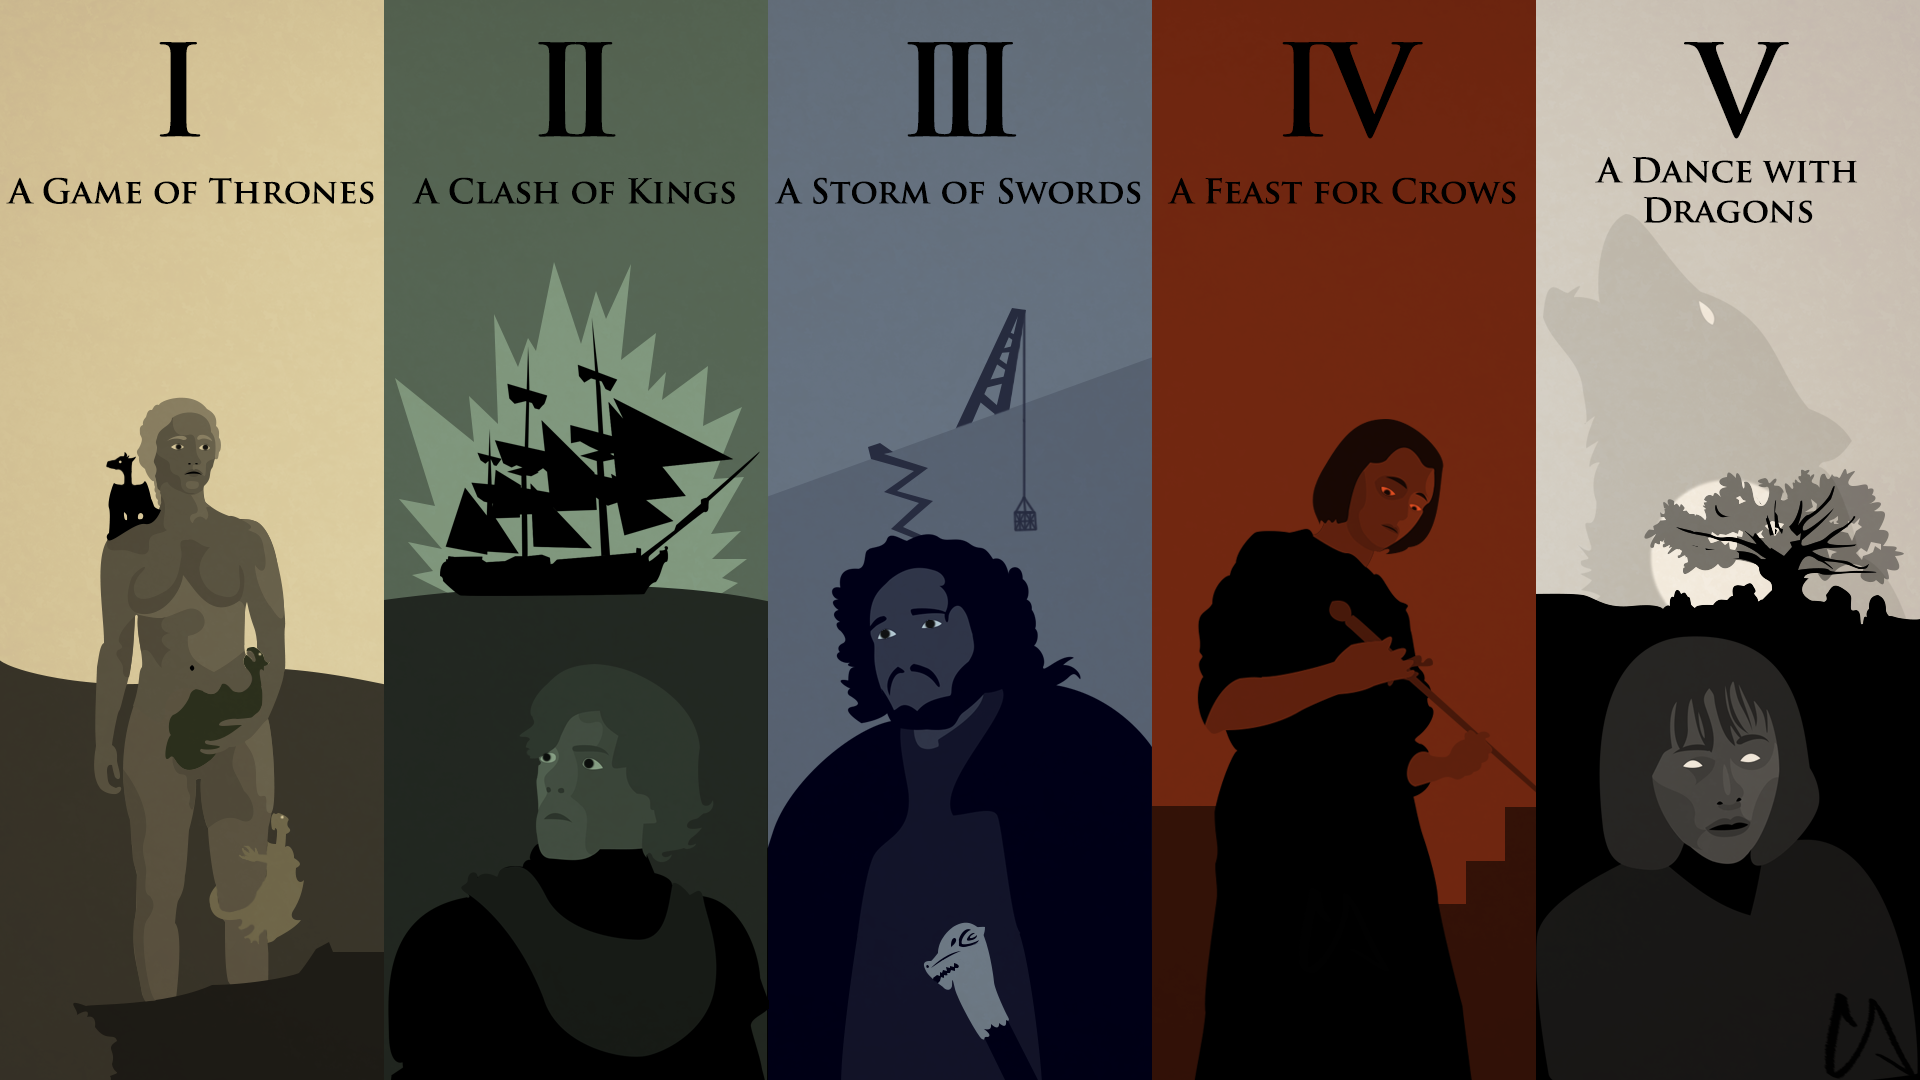 A Song Of Ice And Fire #10